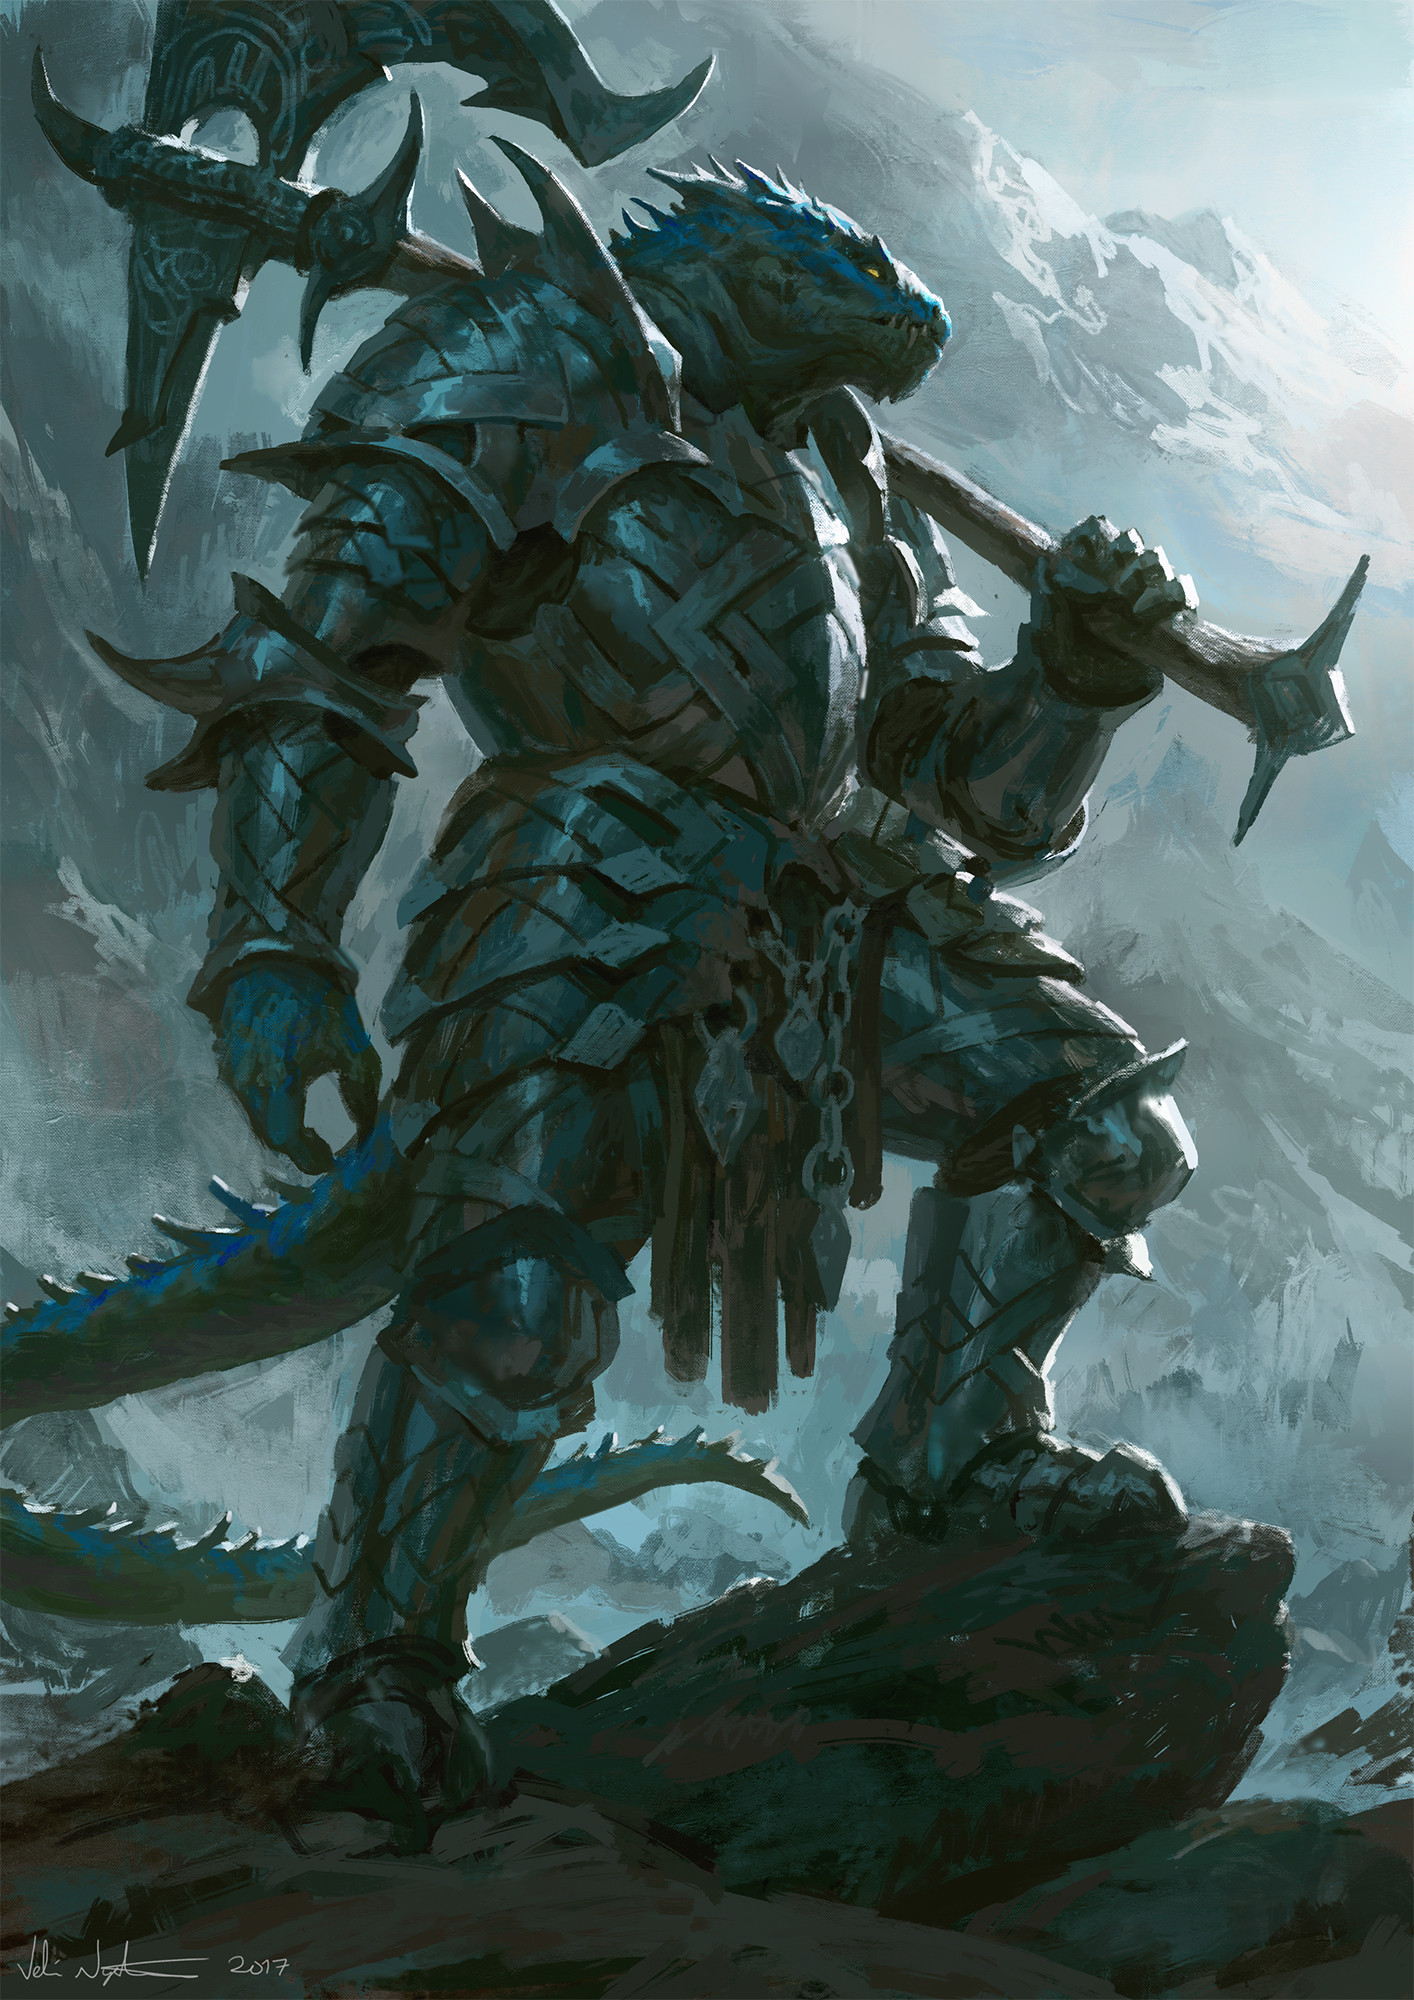 Veli nystrom lizard warrior